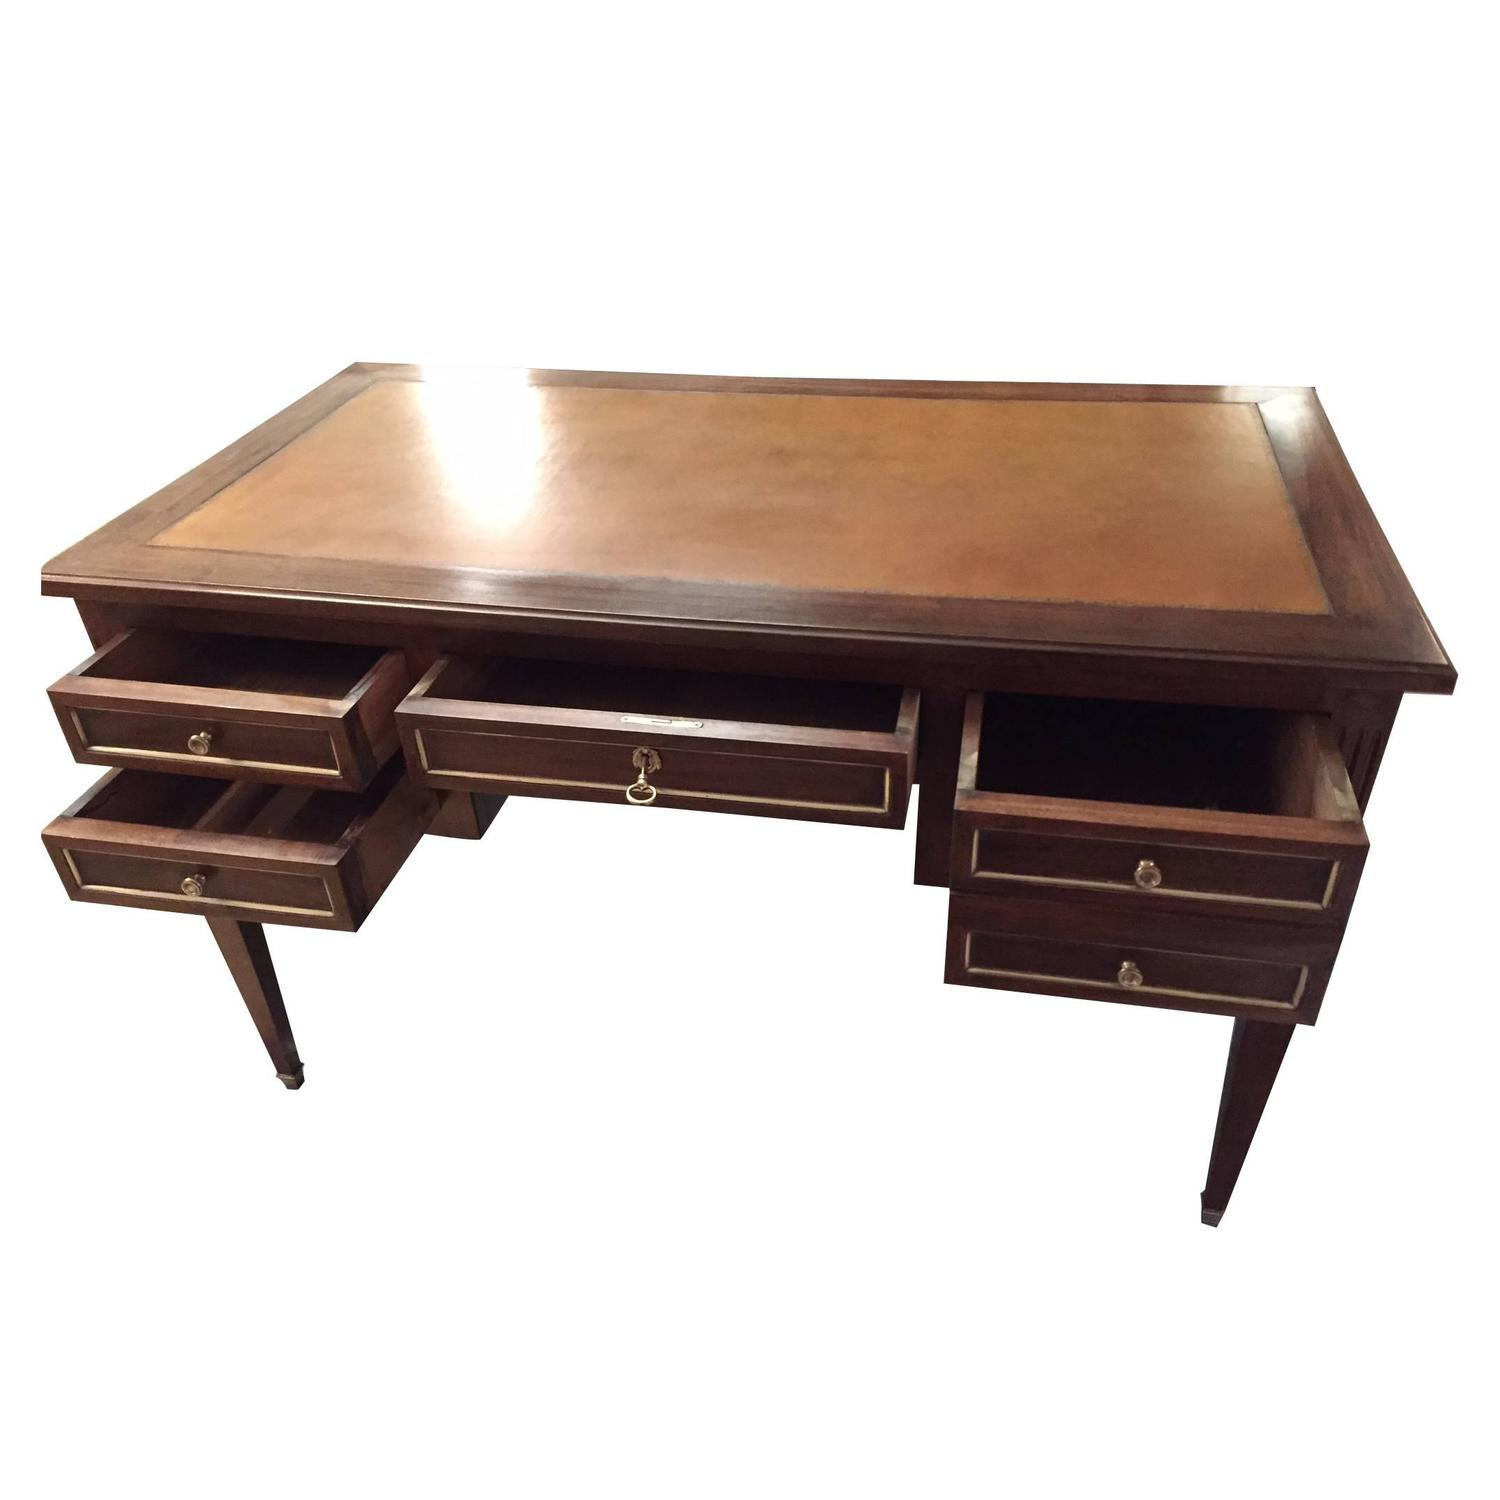 French Leather Writing Desk Table with Glass over Cognac